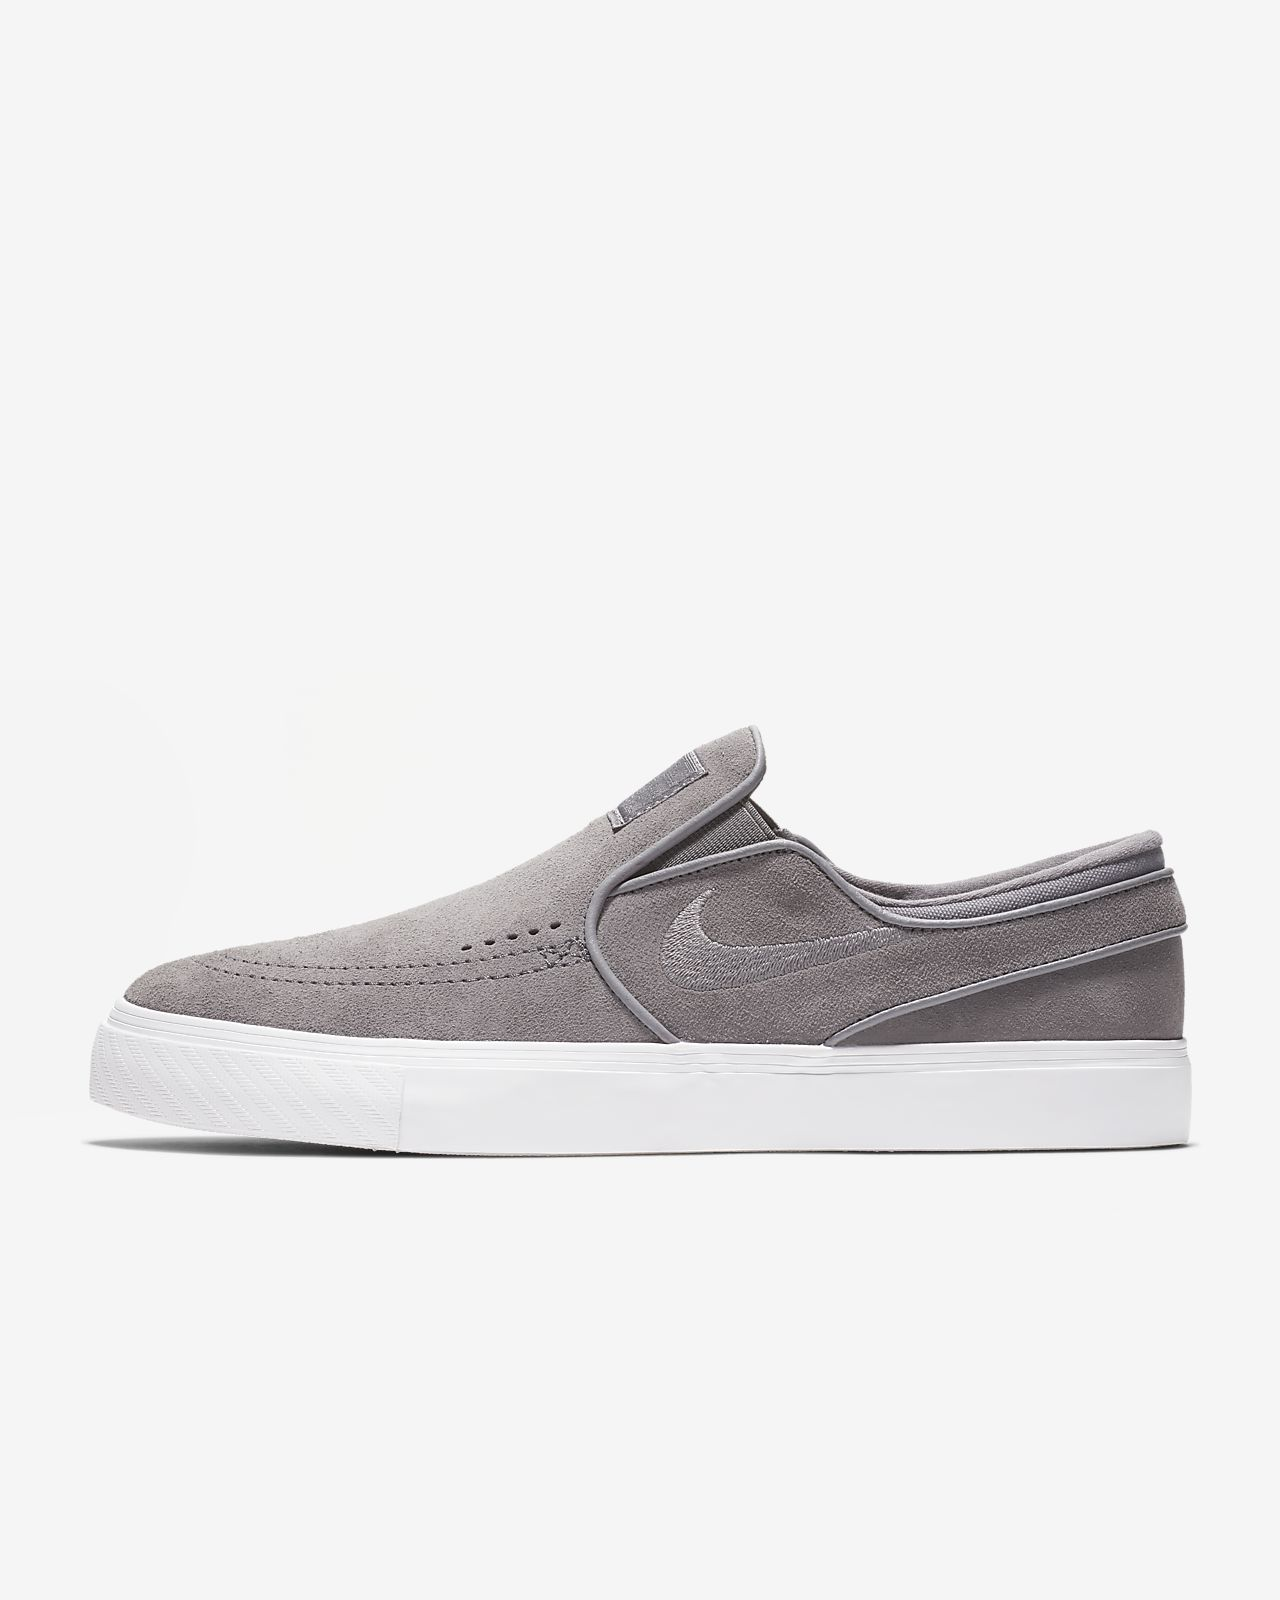 best service abd83 e6a53 Men s Skateboarding Shoe. Nike SB Zoom Stefan Janoski Slip-On